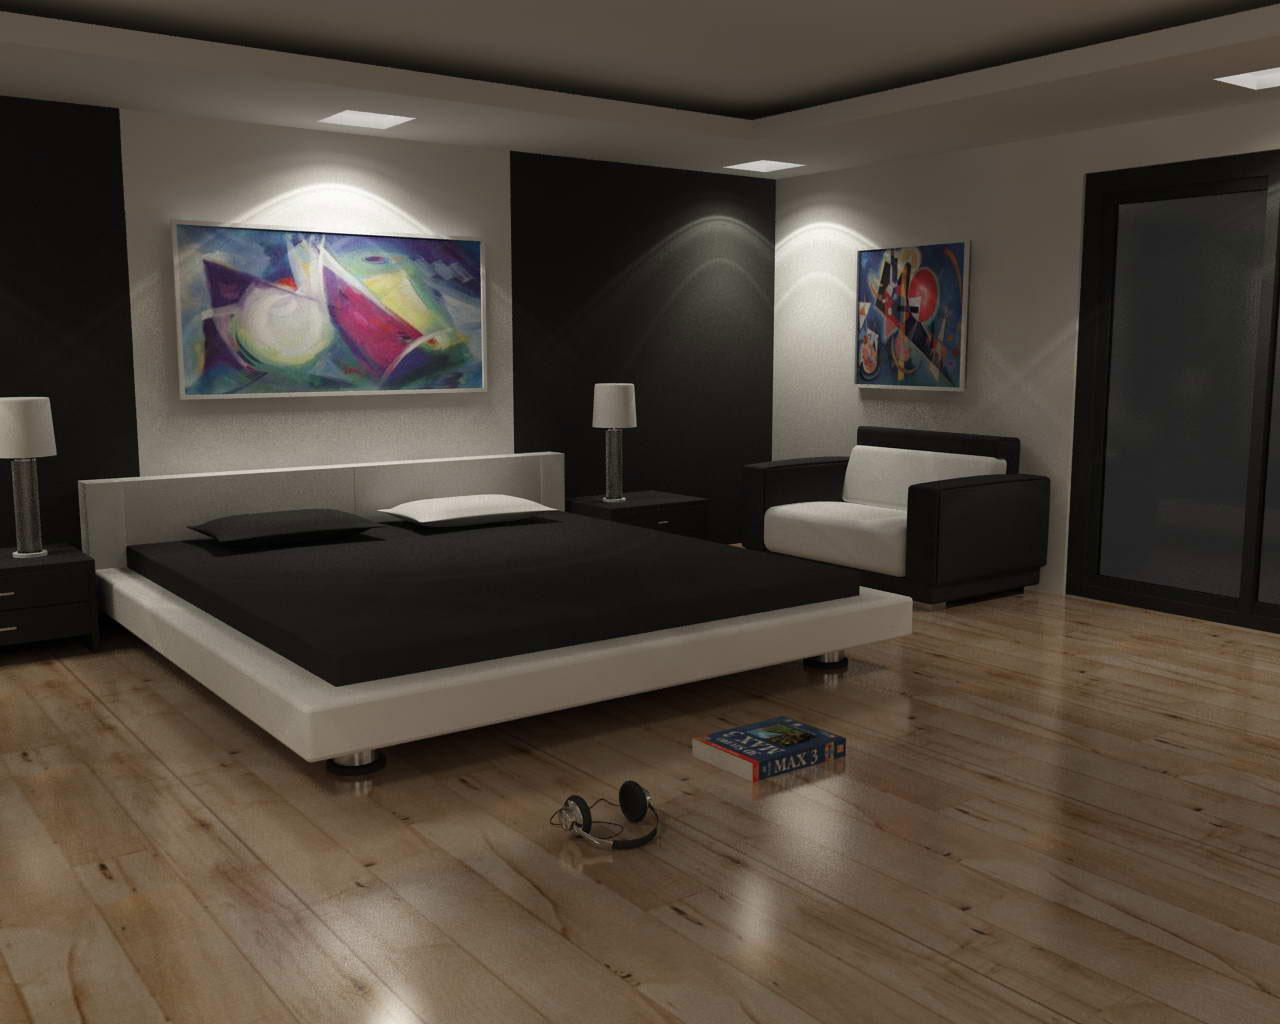 Minimalist Majestic Man Bedroom Design with Board Floor